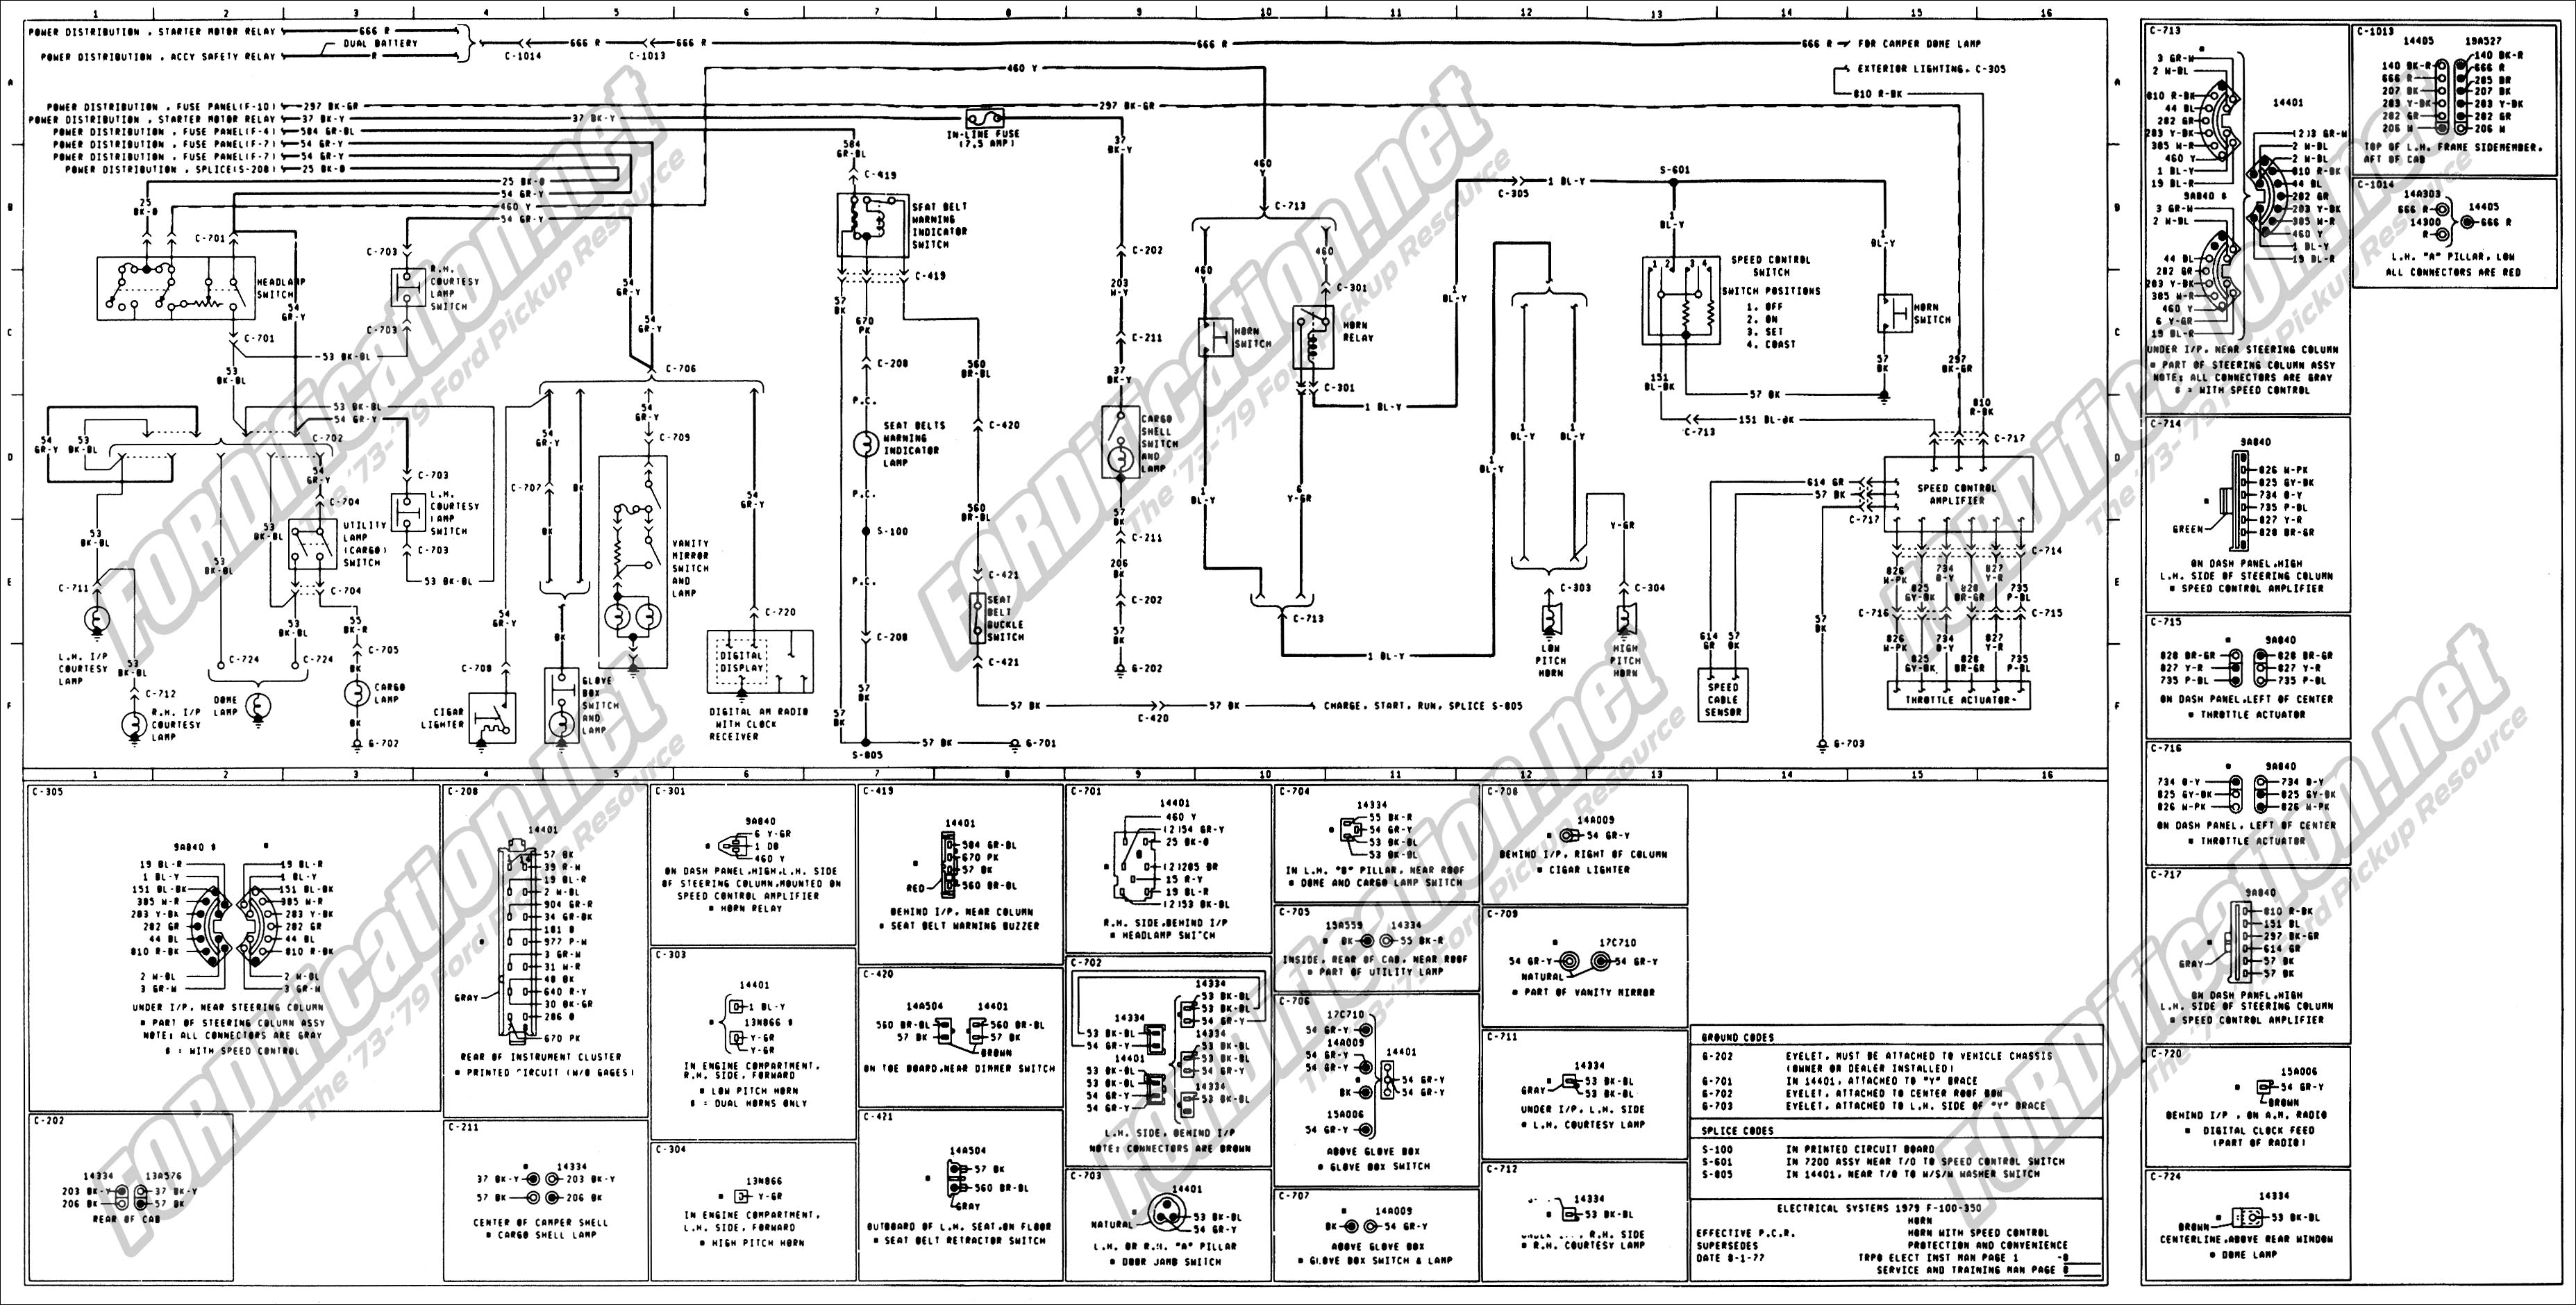 79 Bronco Fuse Box Diagram List Of Schematic Circuit 2006 Avalanche For 1979 Just Wiring Data Rh Ag Skiphire Co Uk